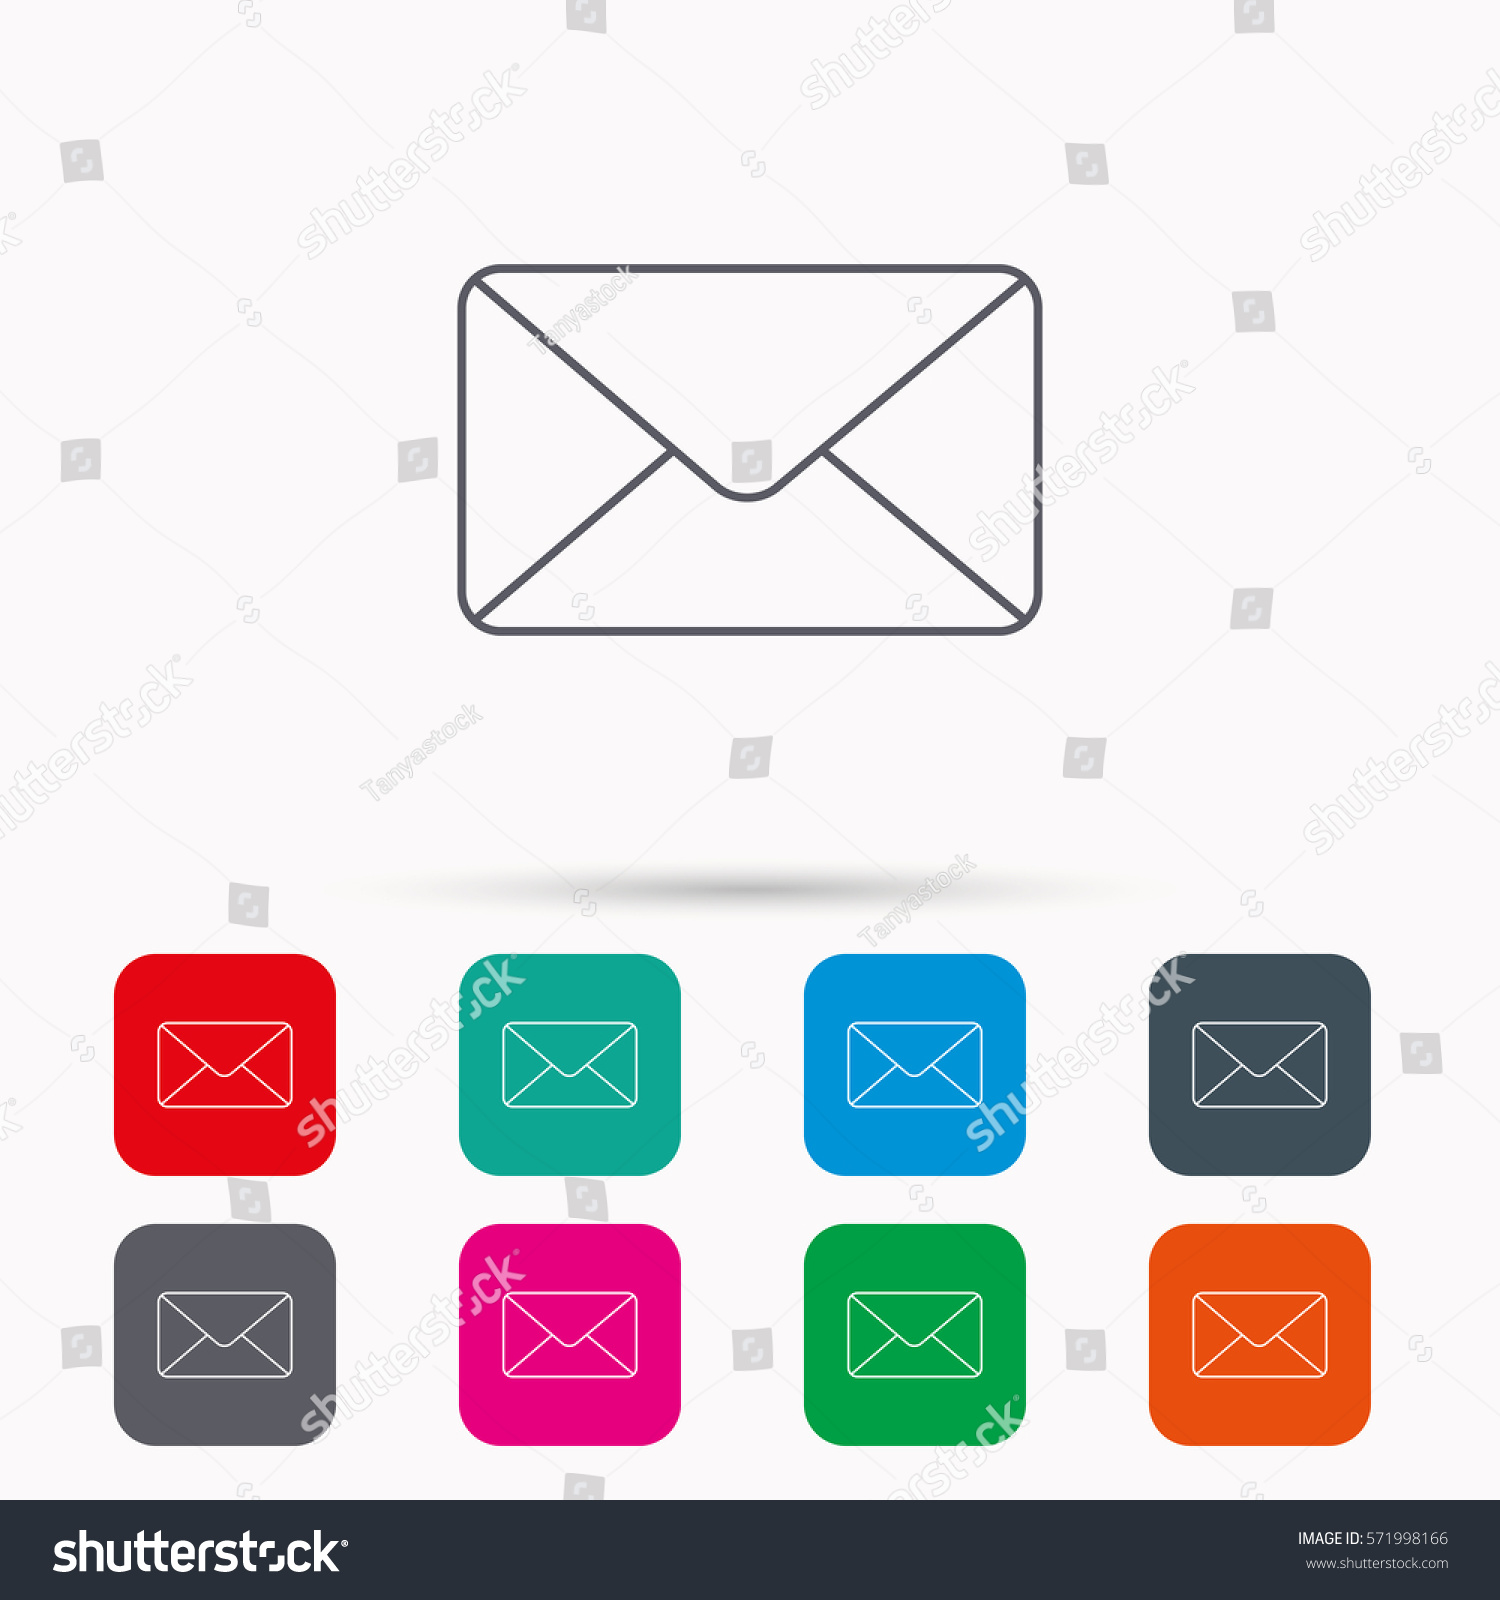 Envelope mail icon email message sign stock illustration 571998166 email message sign internet letter symbol linear icons in squares biocorpaavc